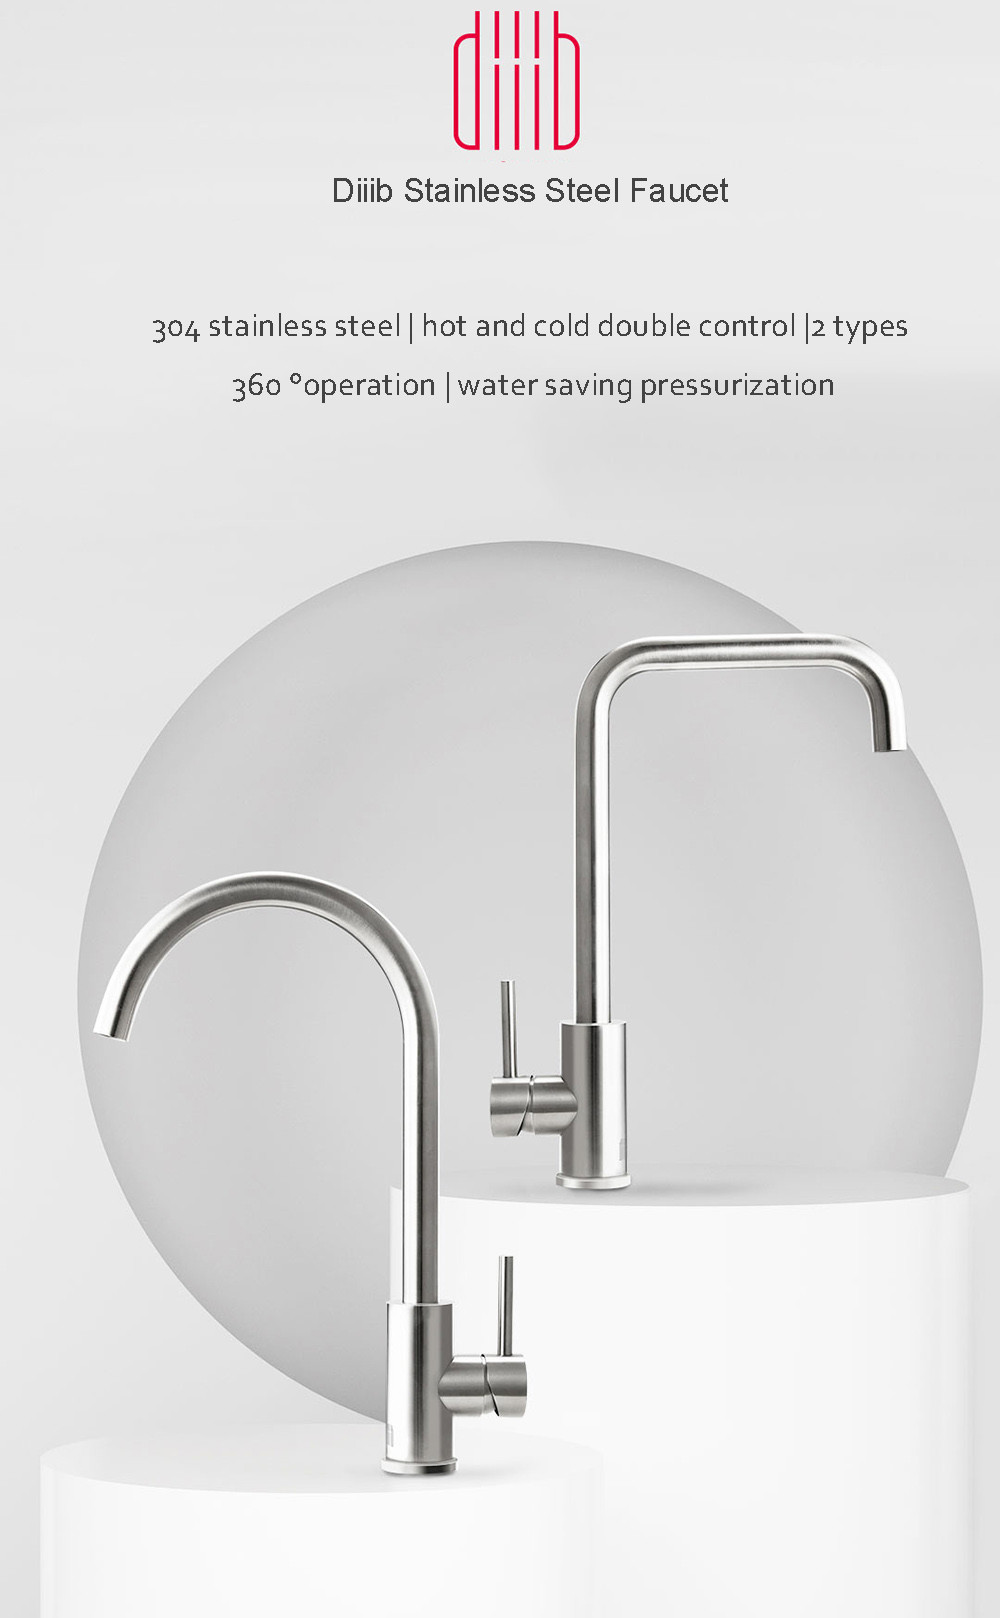 Diiib Stainless Steel Kitchen Basin Sink Faucet Tap 360° Rotation Hot Cold Mixer Tap Single Handle Deck Mount from Xiaomi Youpin